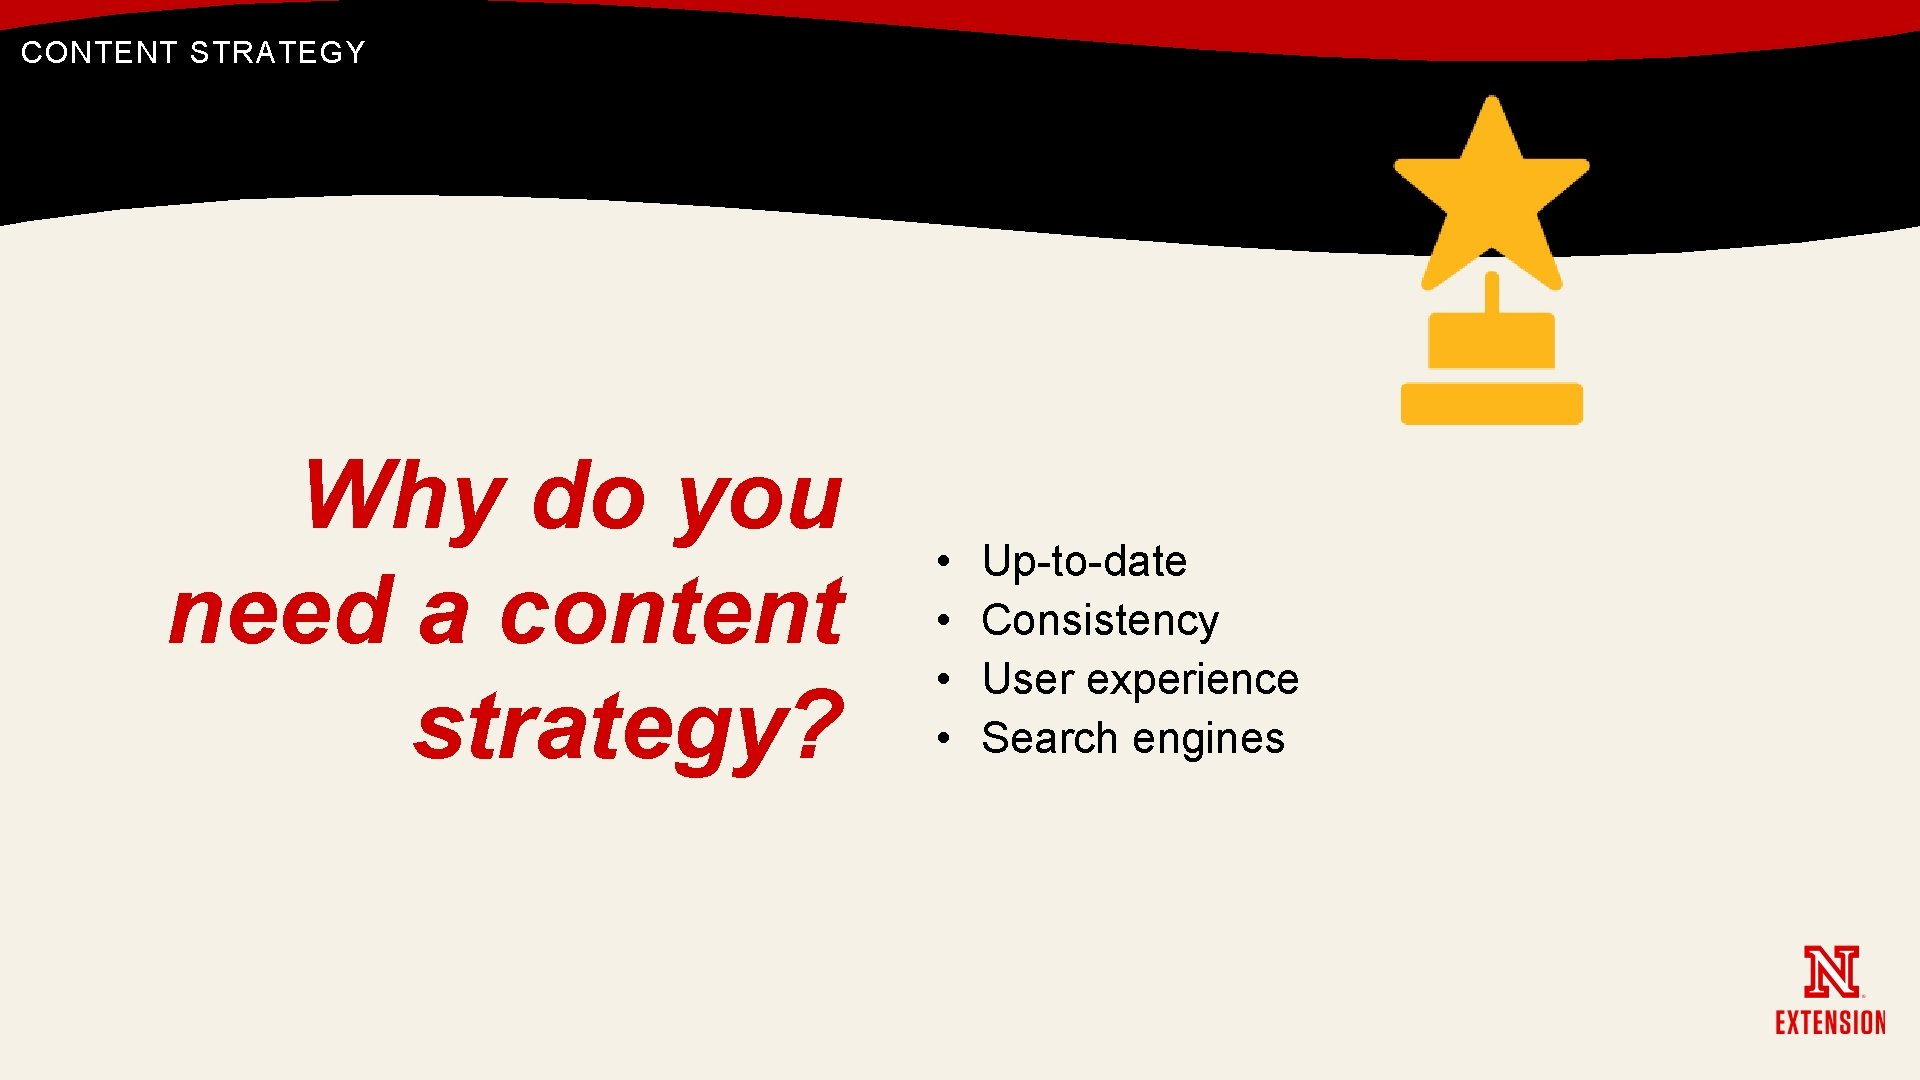 CONTENT STRATEGY Why do you need a content strategy? • • Up-to-date Consistency User